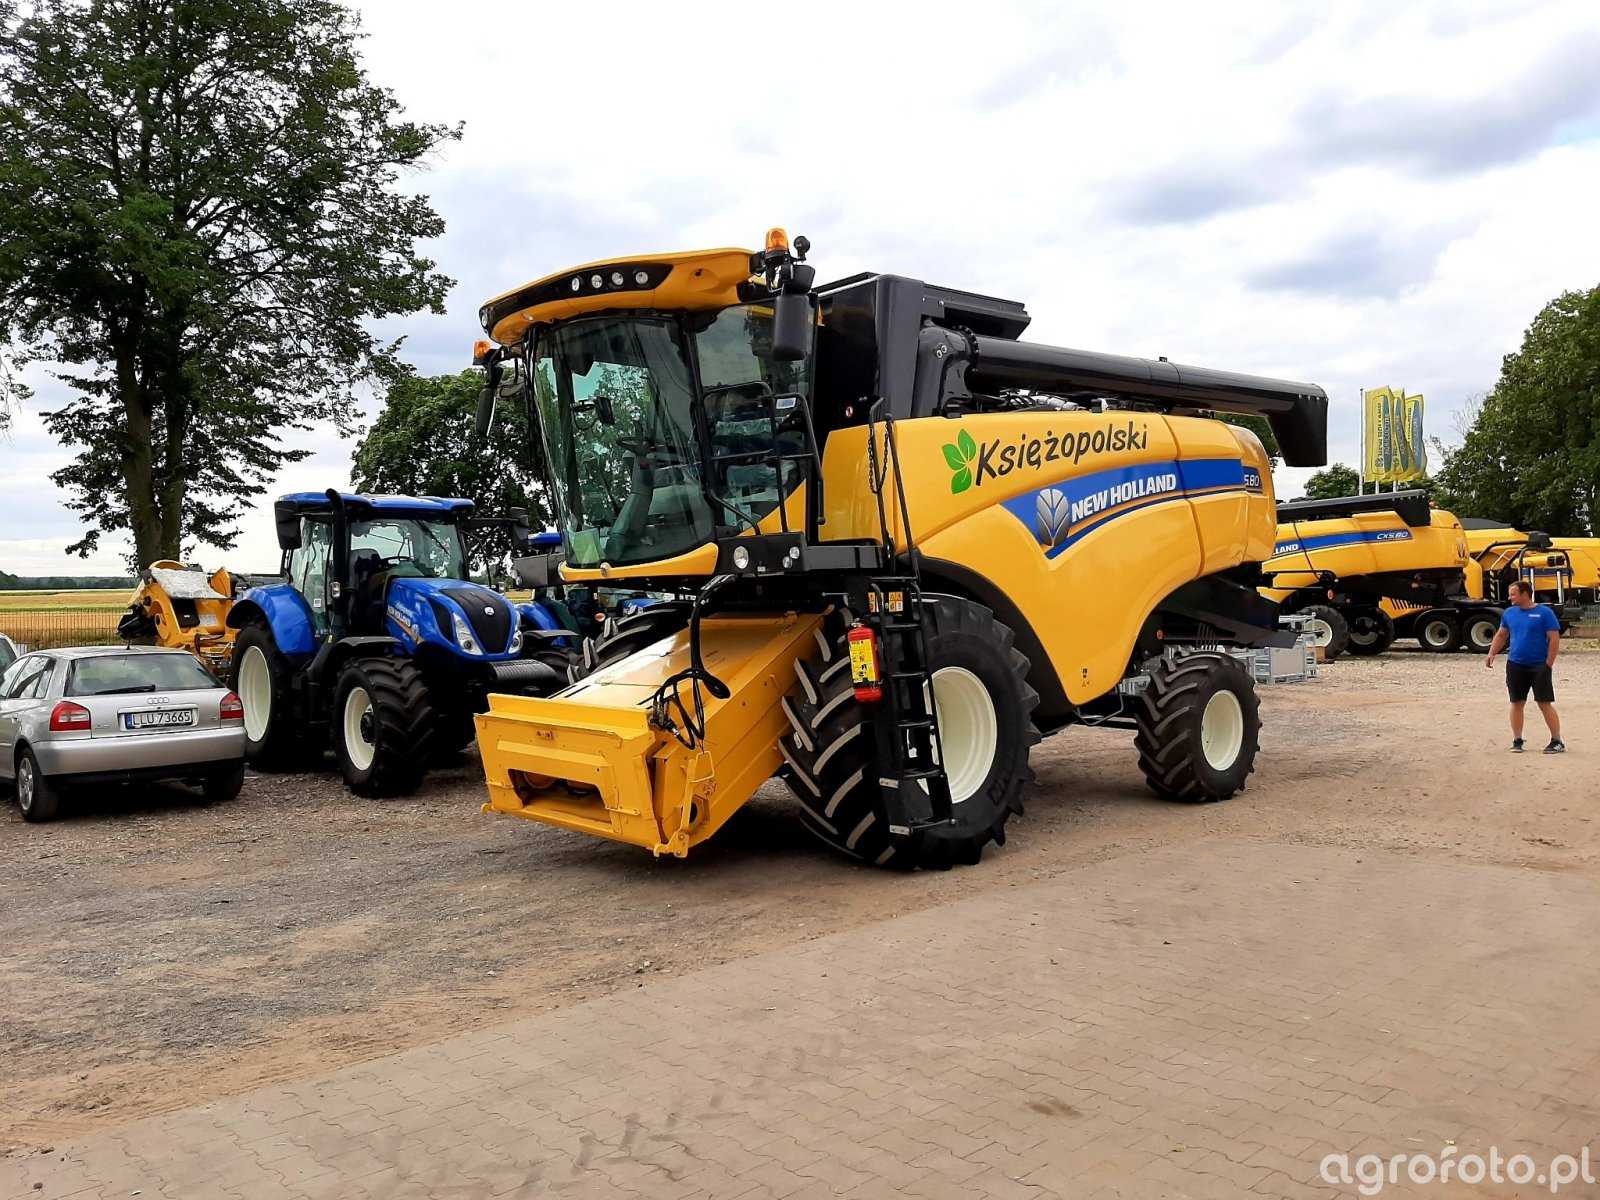 Kombajn New Holland CX 5.80